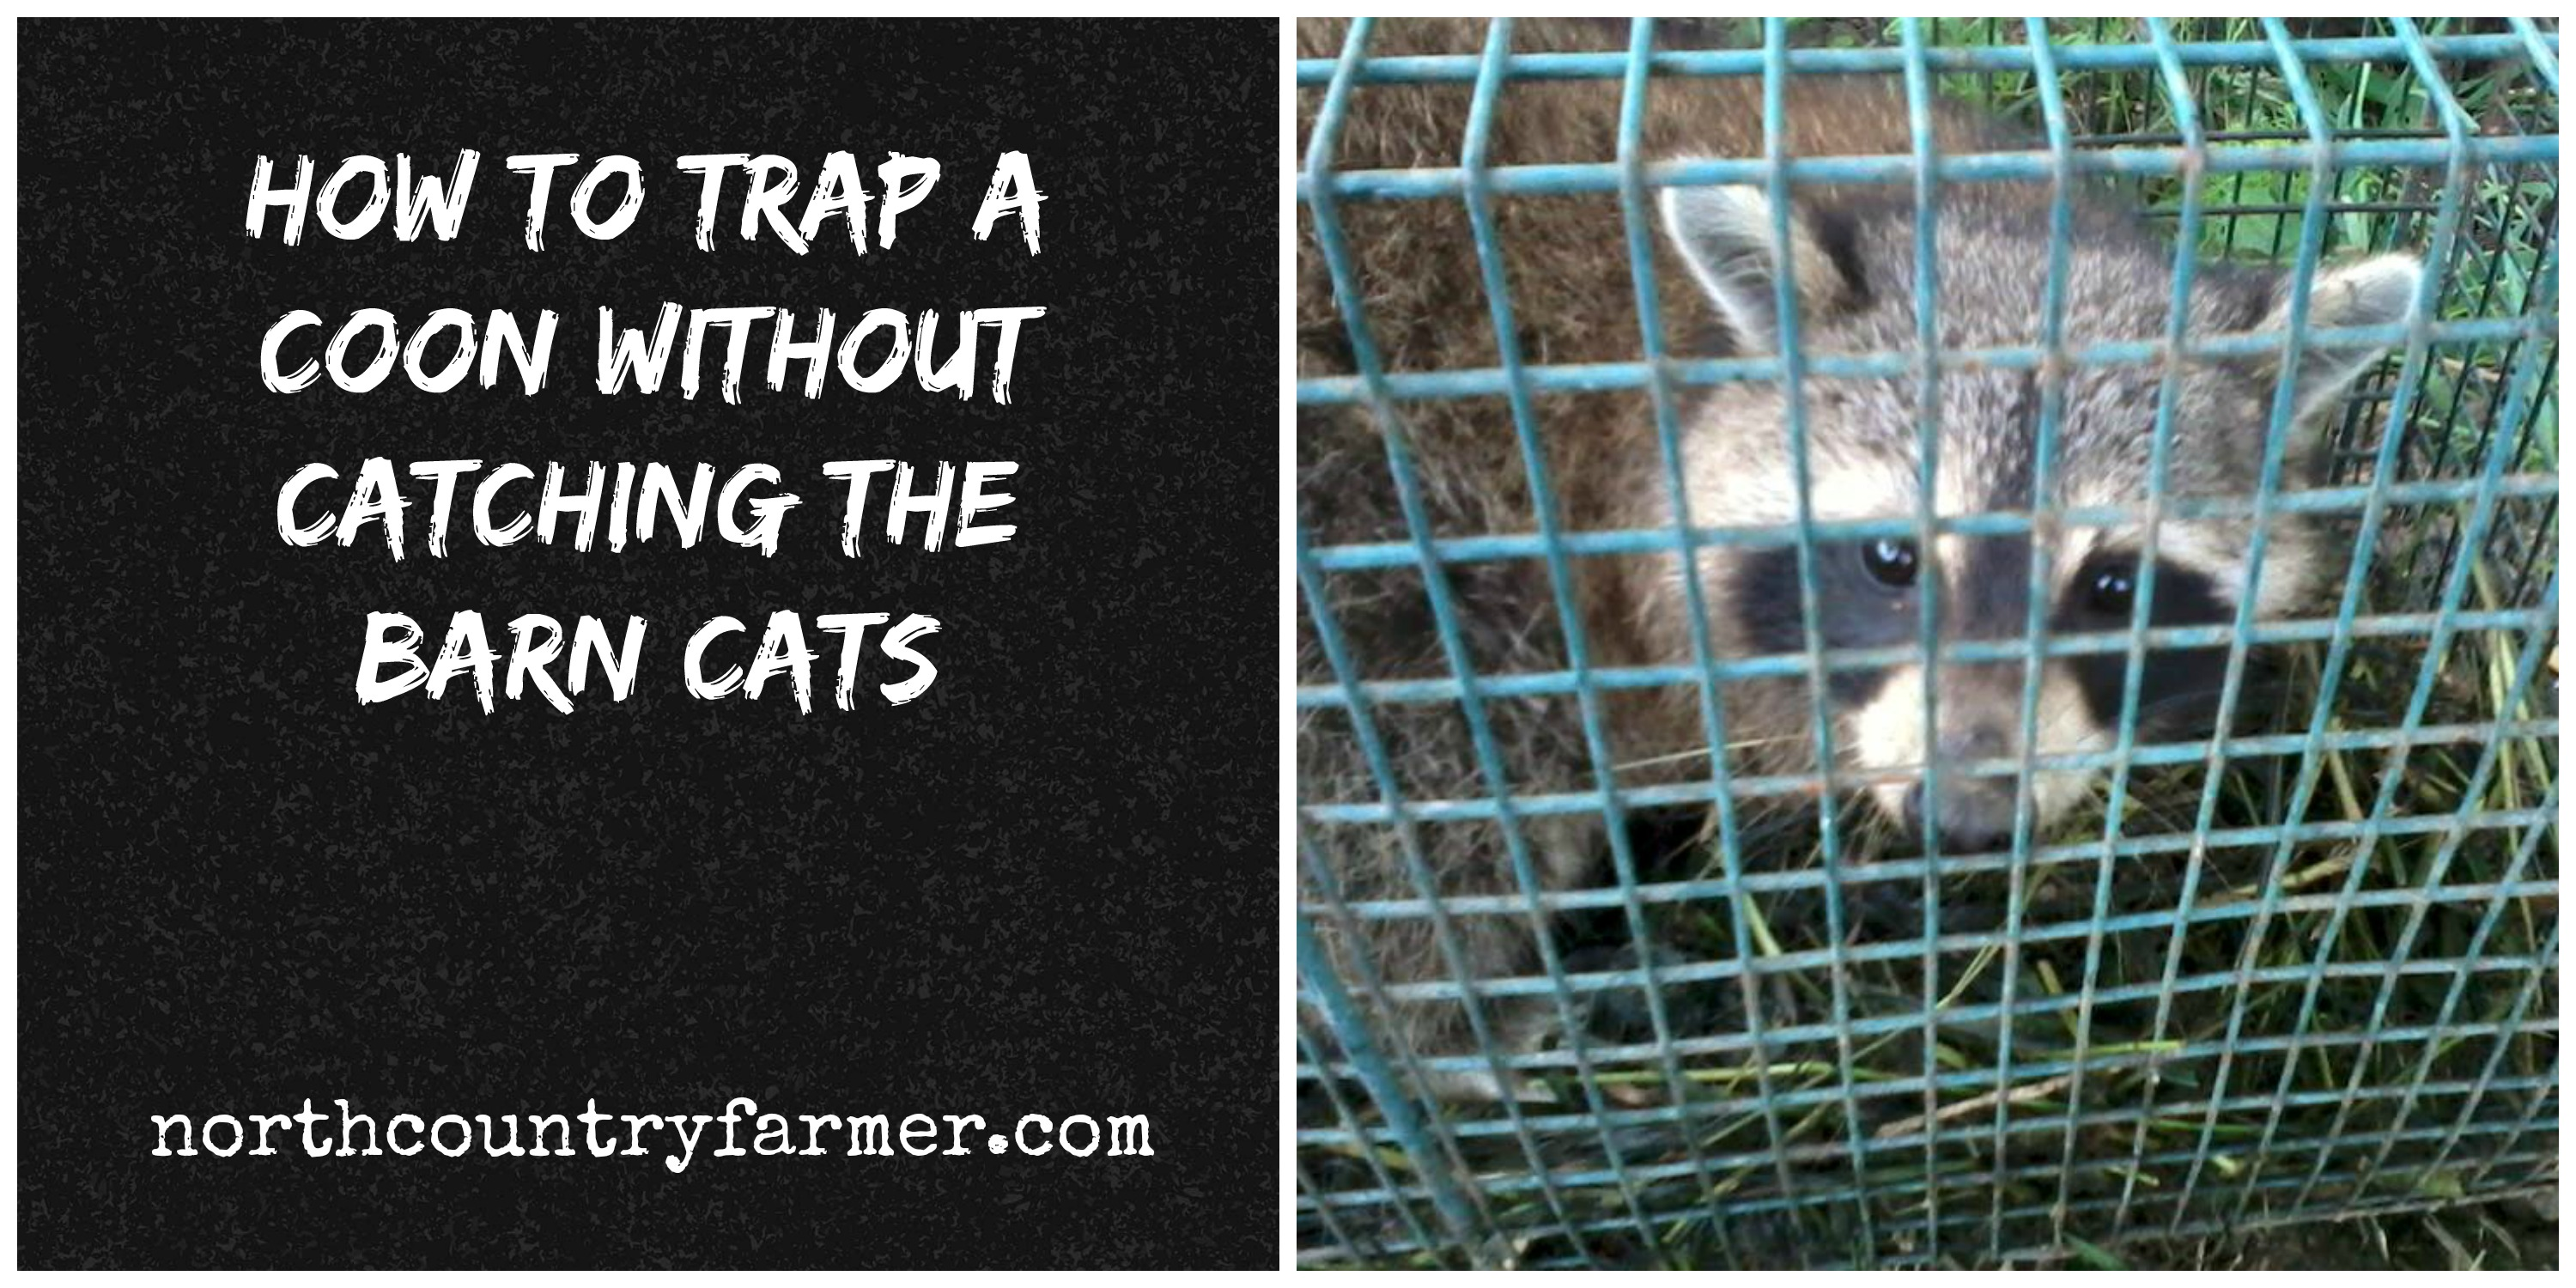 How To Trap A Coon Without Catching The Barn Cats - North